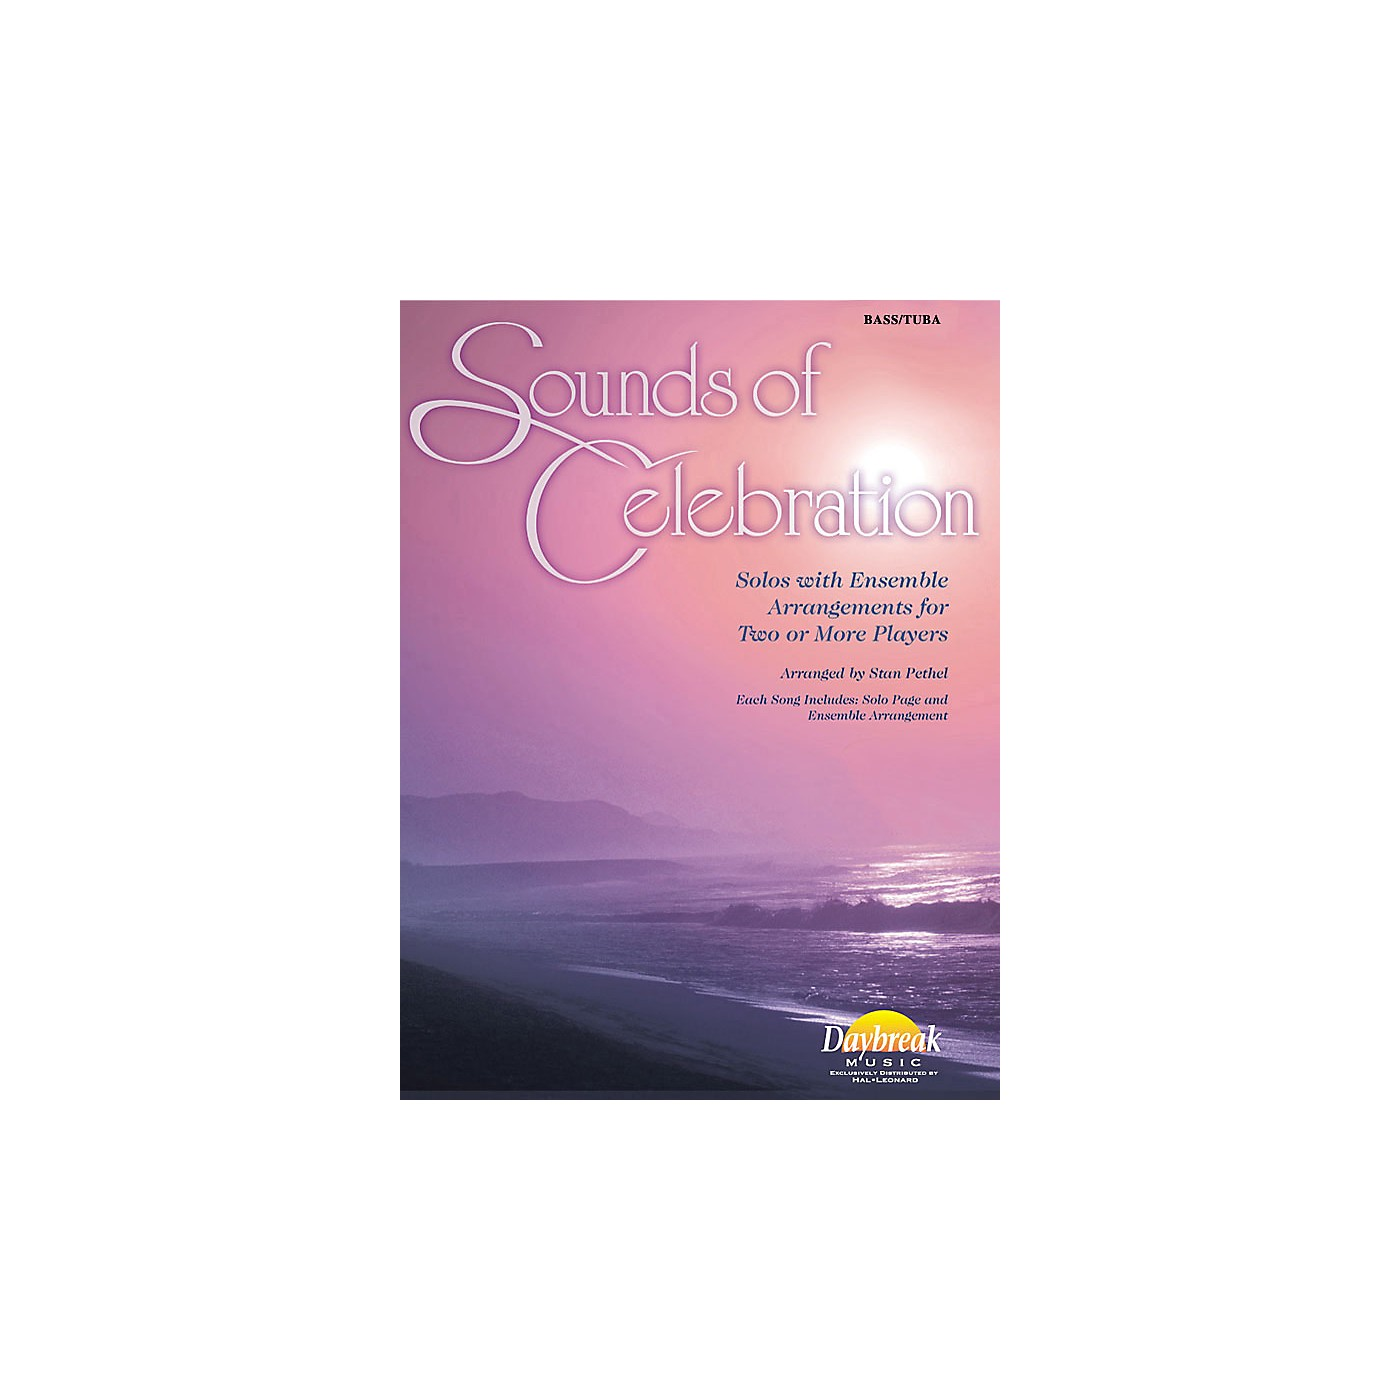 Daybreak Music Sounds of Celebration (Solos with Ensemble Arrangements for Two or More Players) Bass/Tuba thumbnail